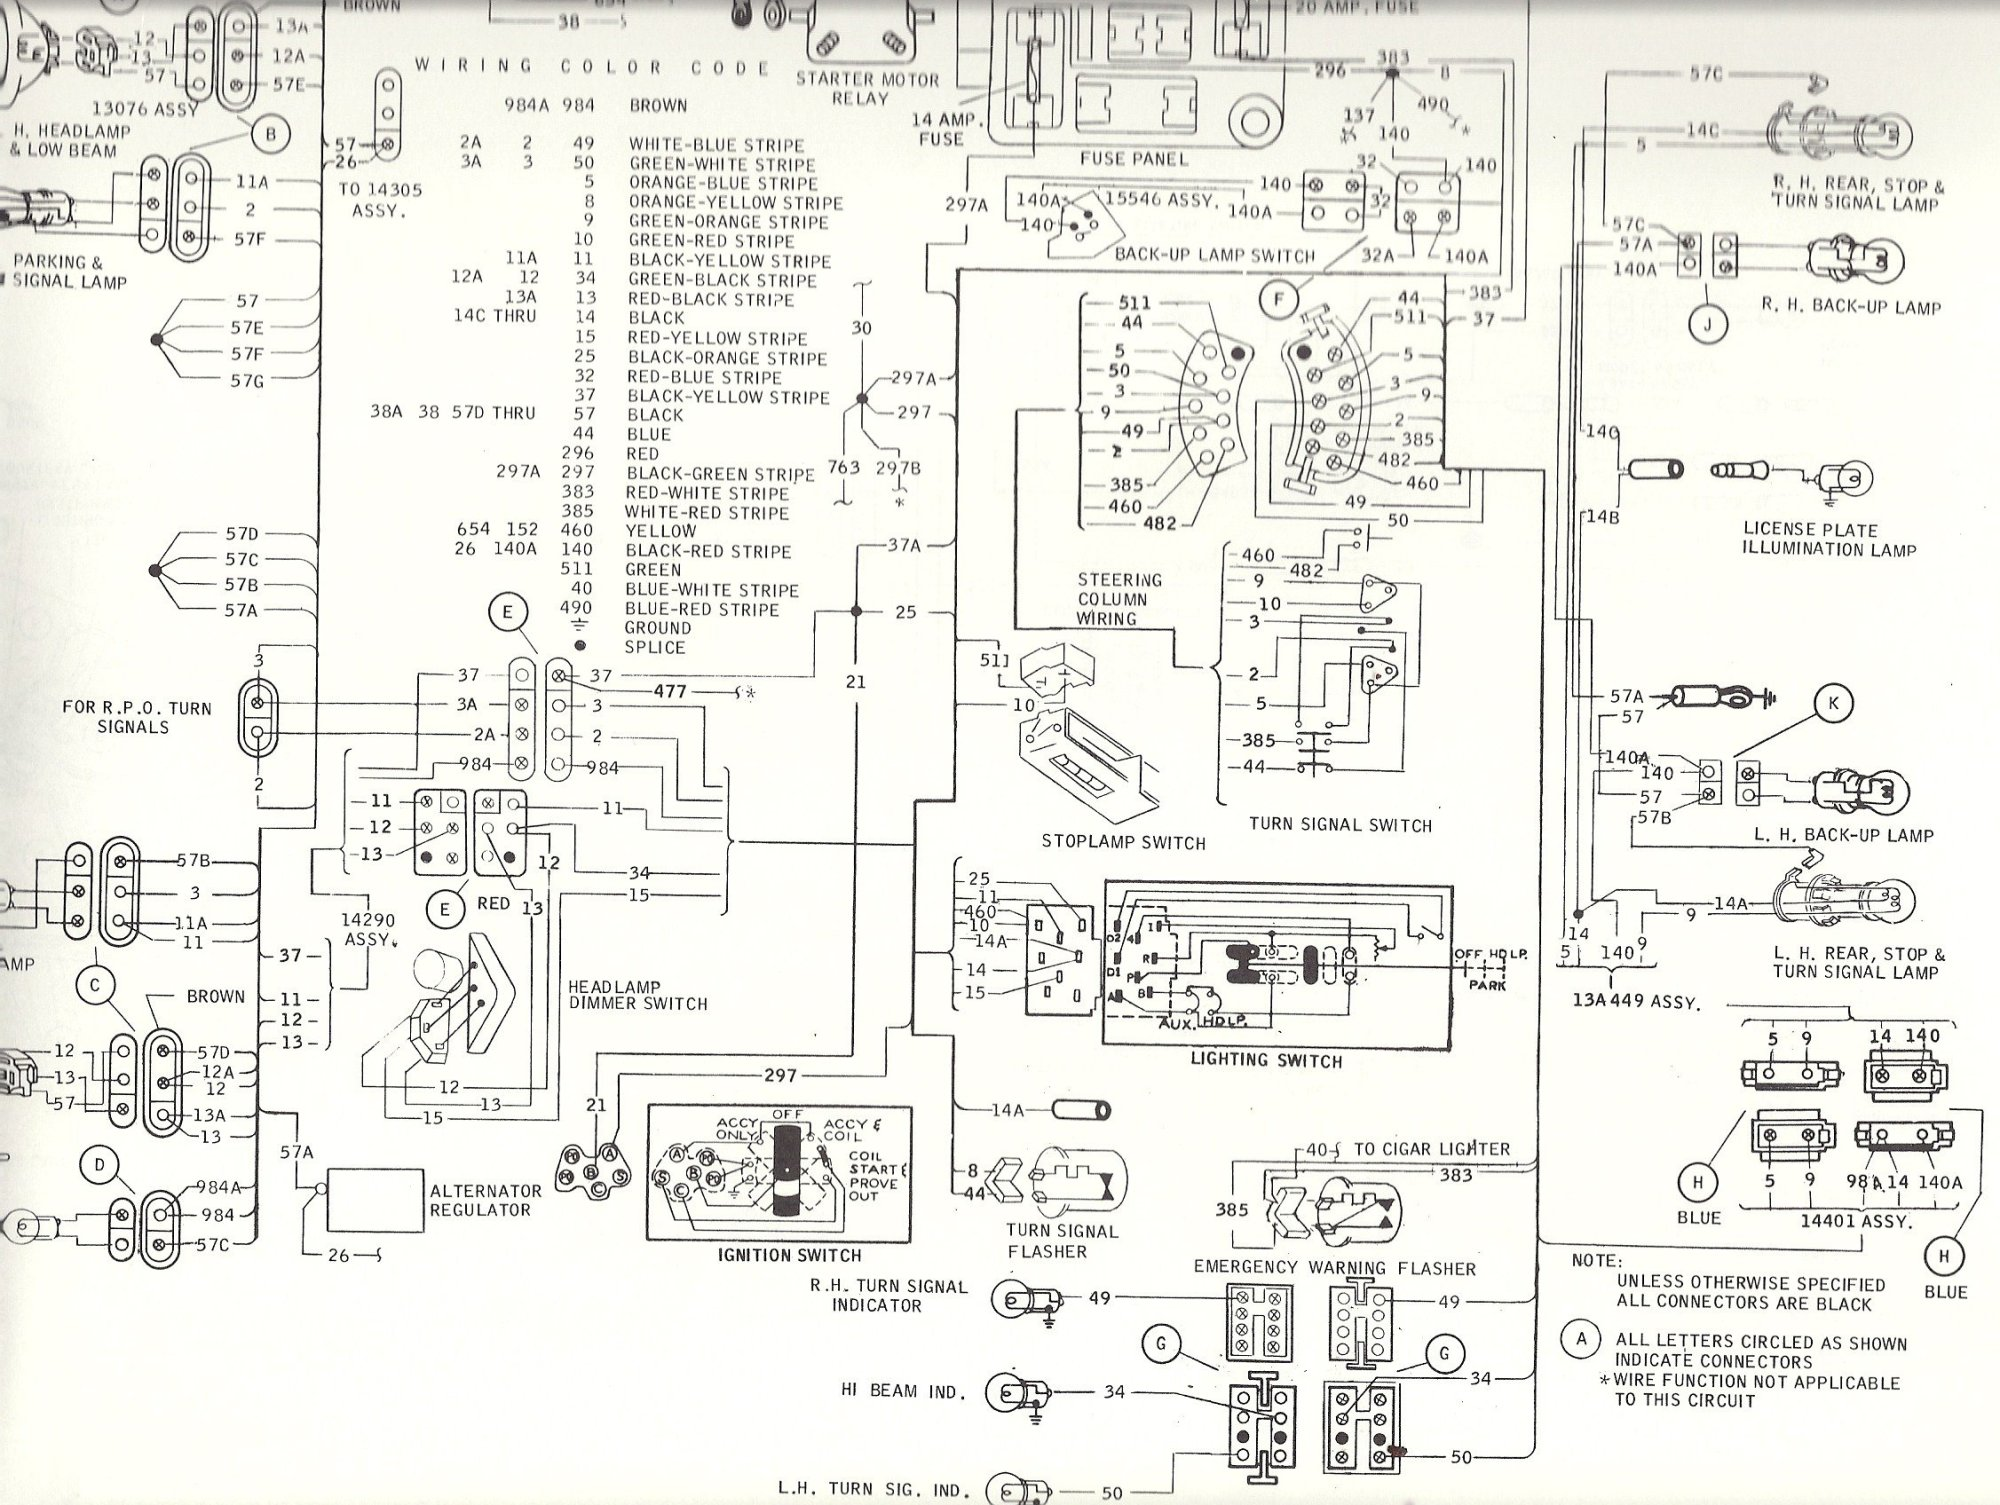 hight resolution of 1969 mustang fuse box diagram wiring diagram centre 1969 mustang coupe fuse block diagram